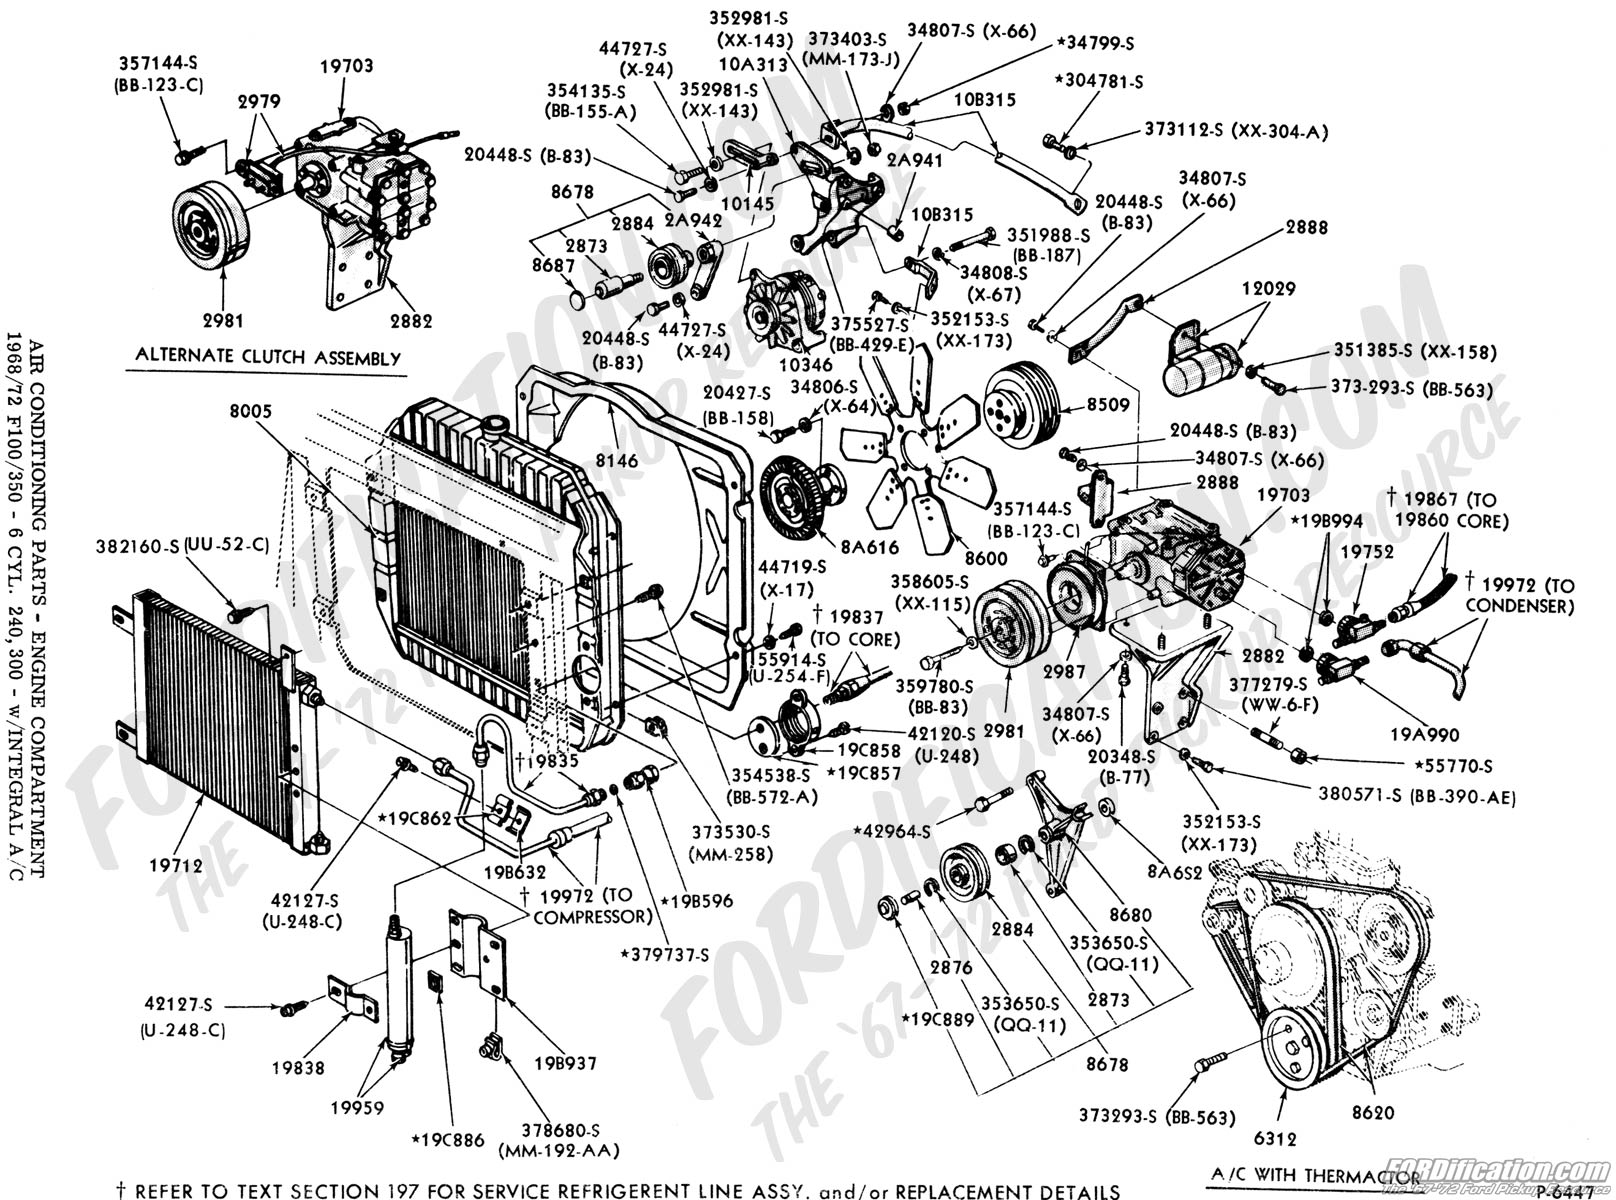 1955 ford engine compartt